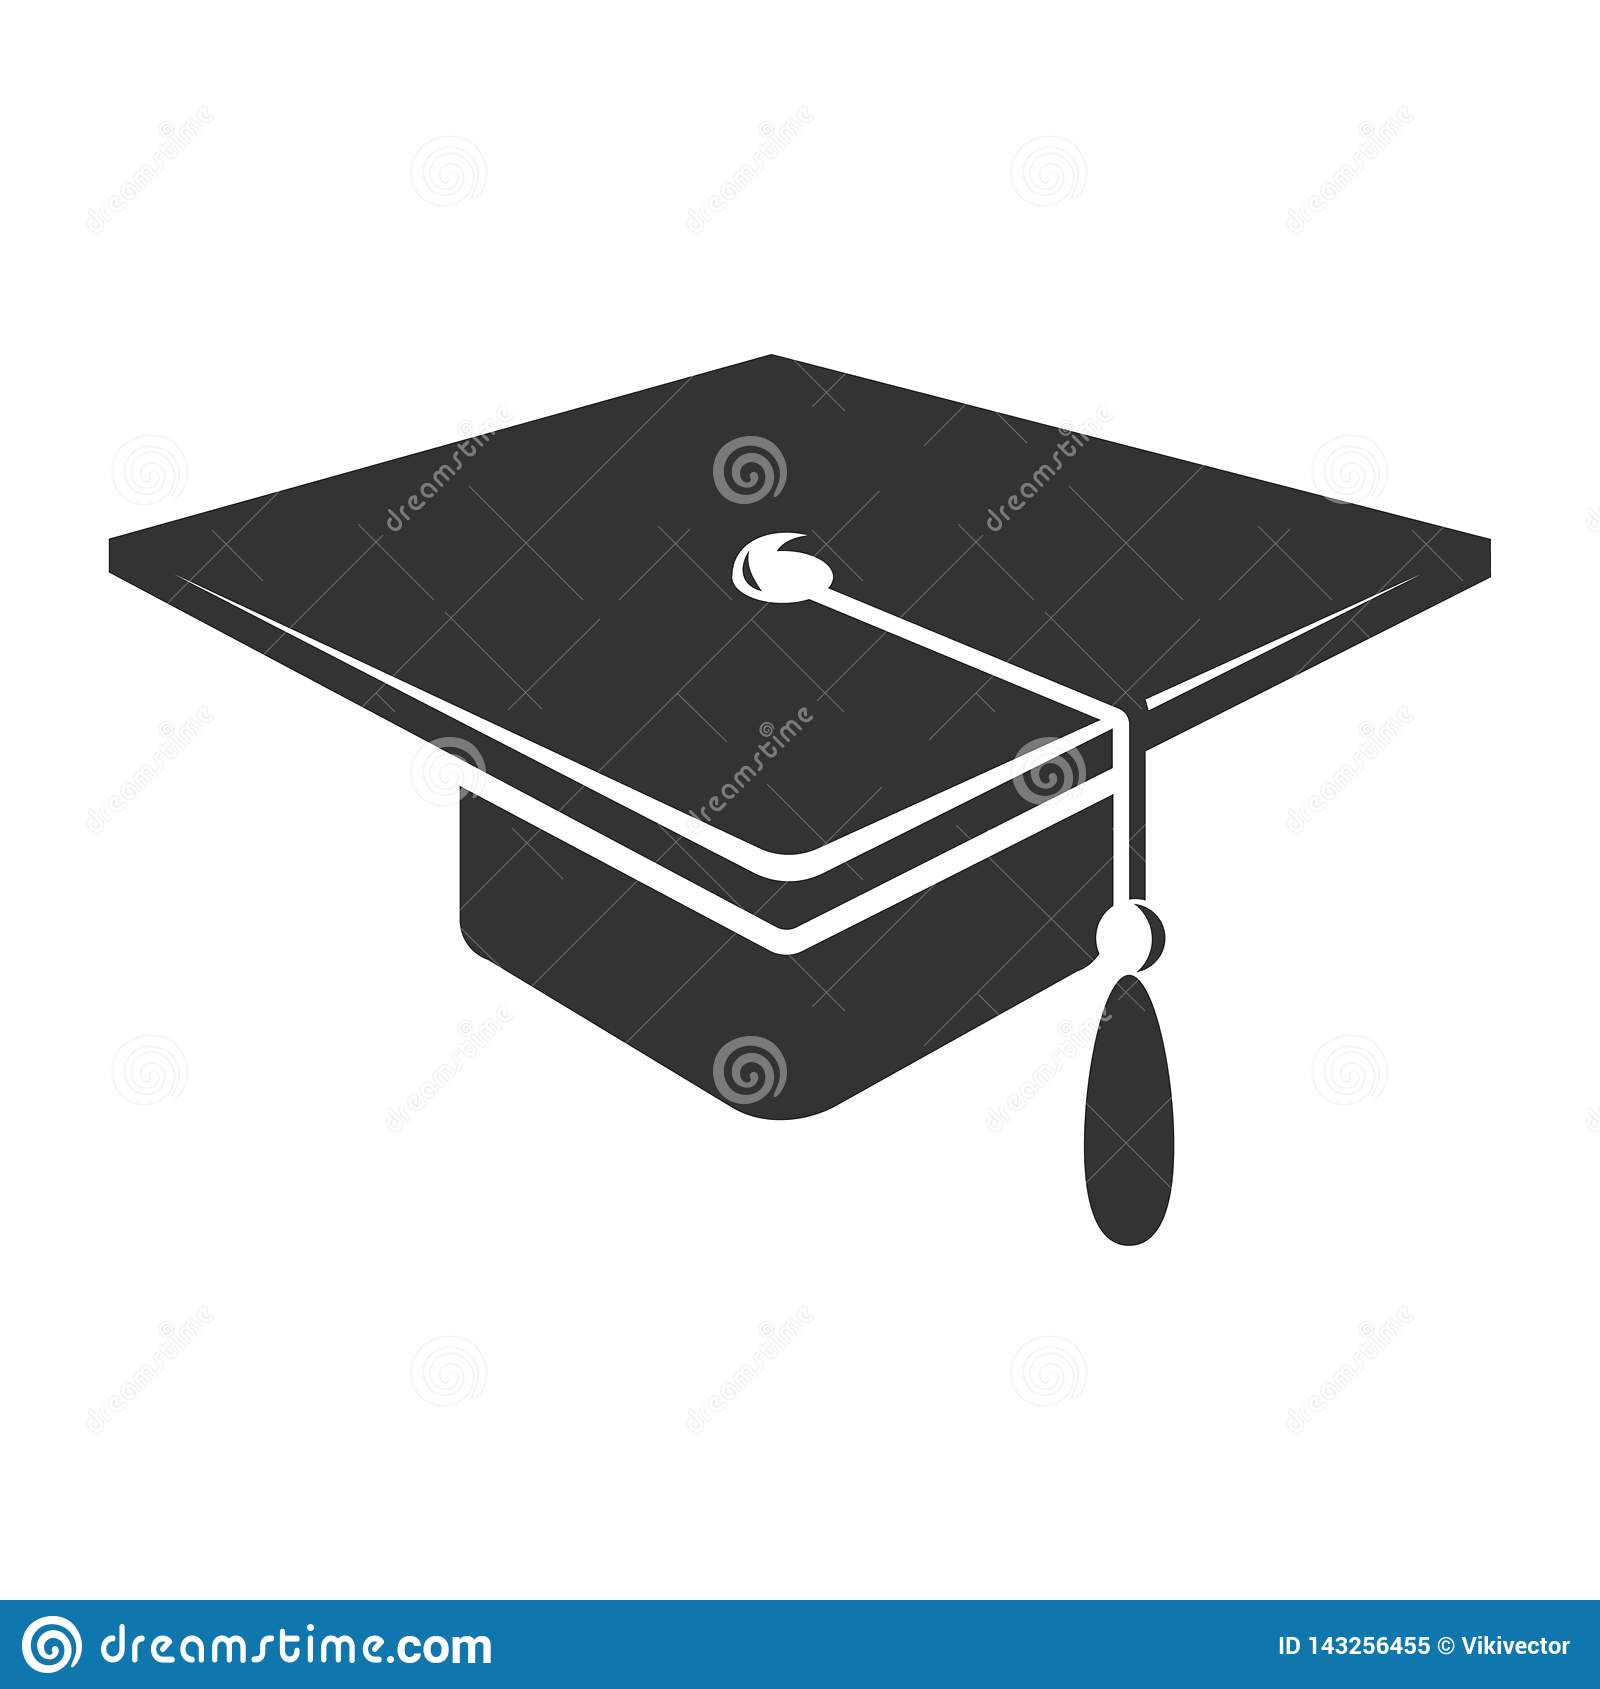 c8030cf43 Graduate cap with tassel icon, black academy symbol. University hat. Vector  line art illustration isolated on white background